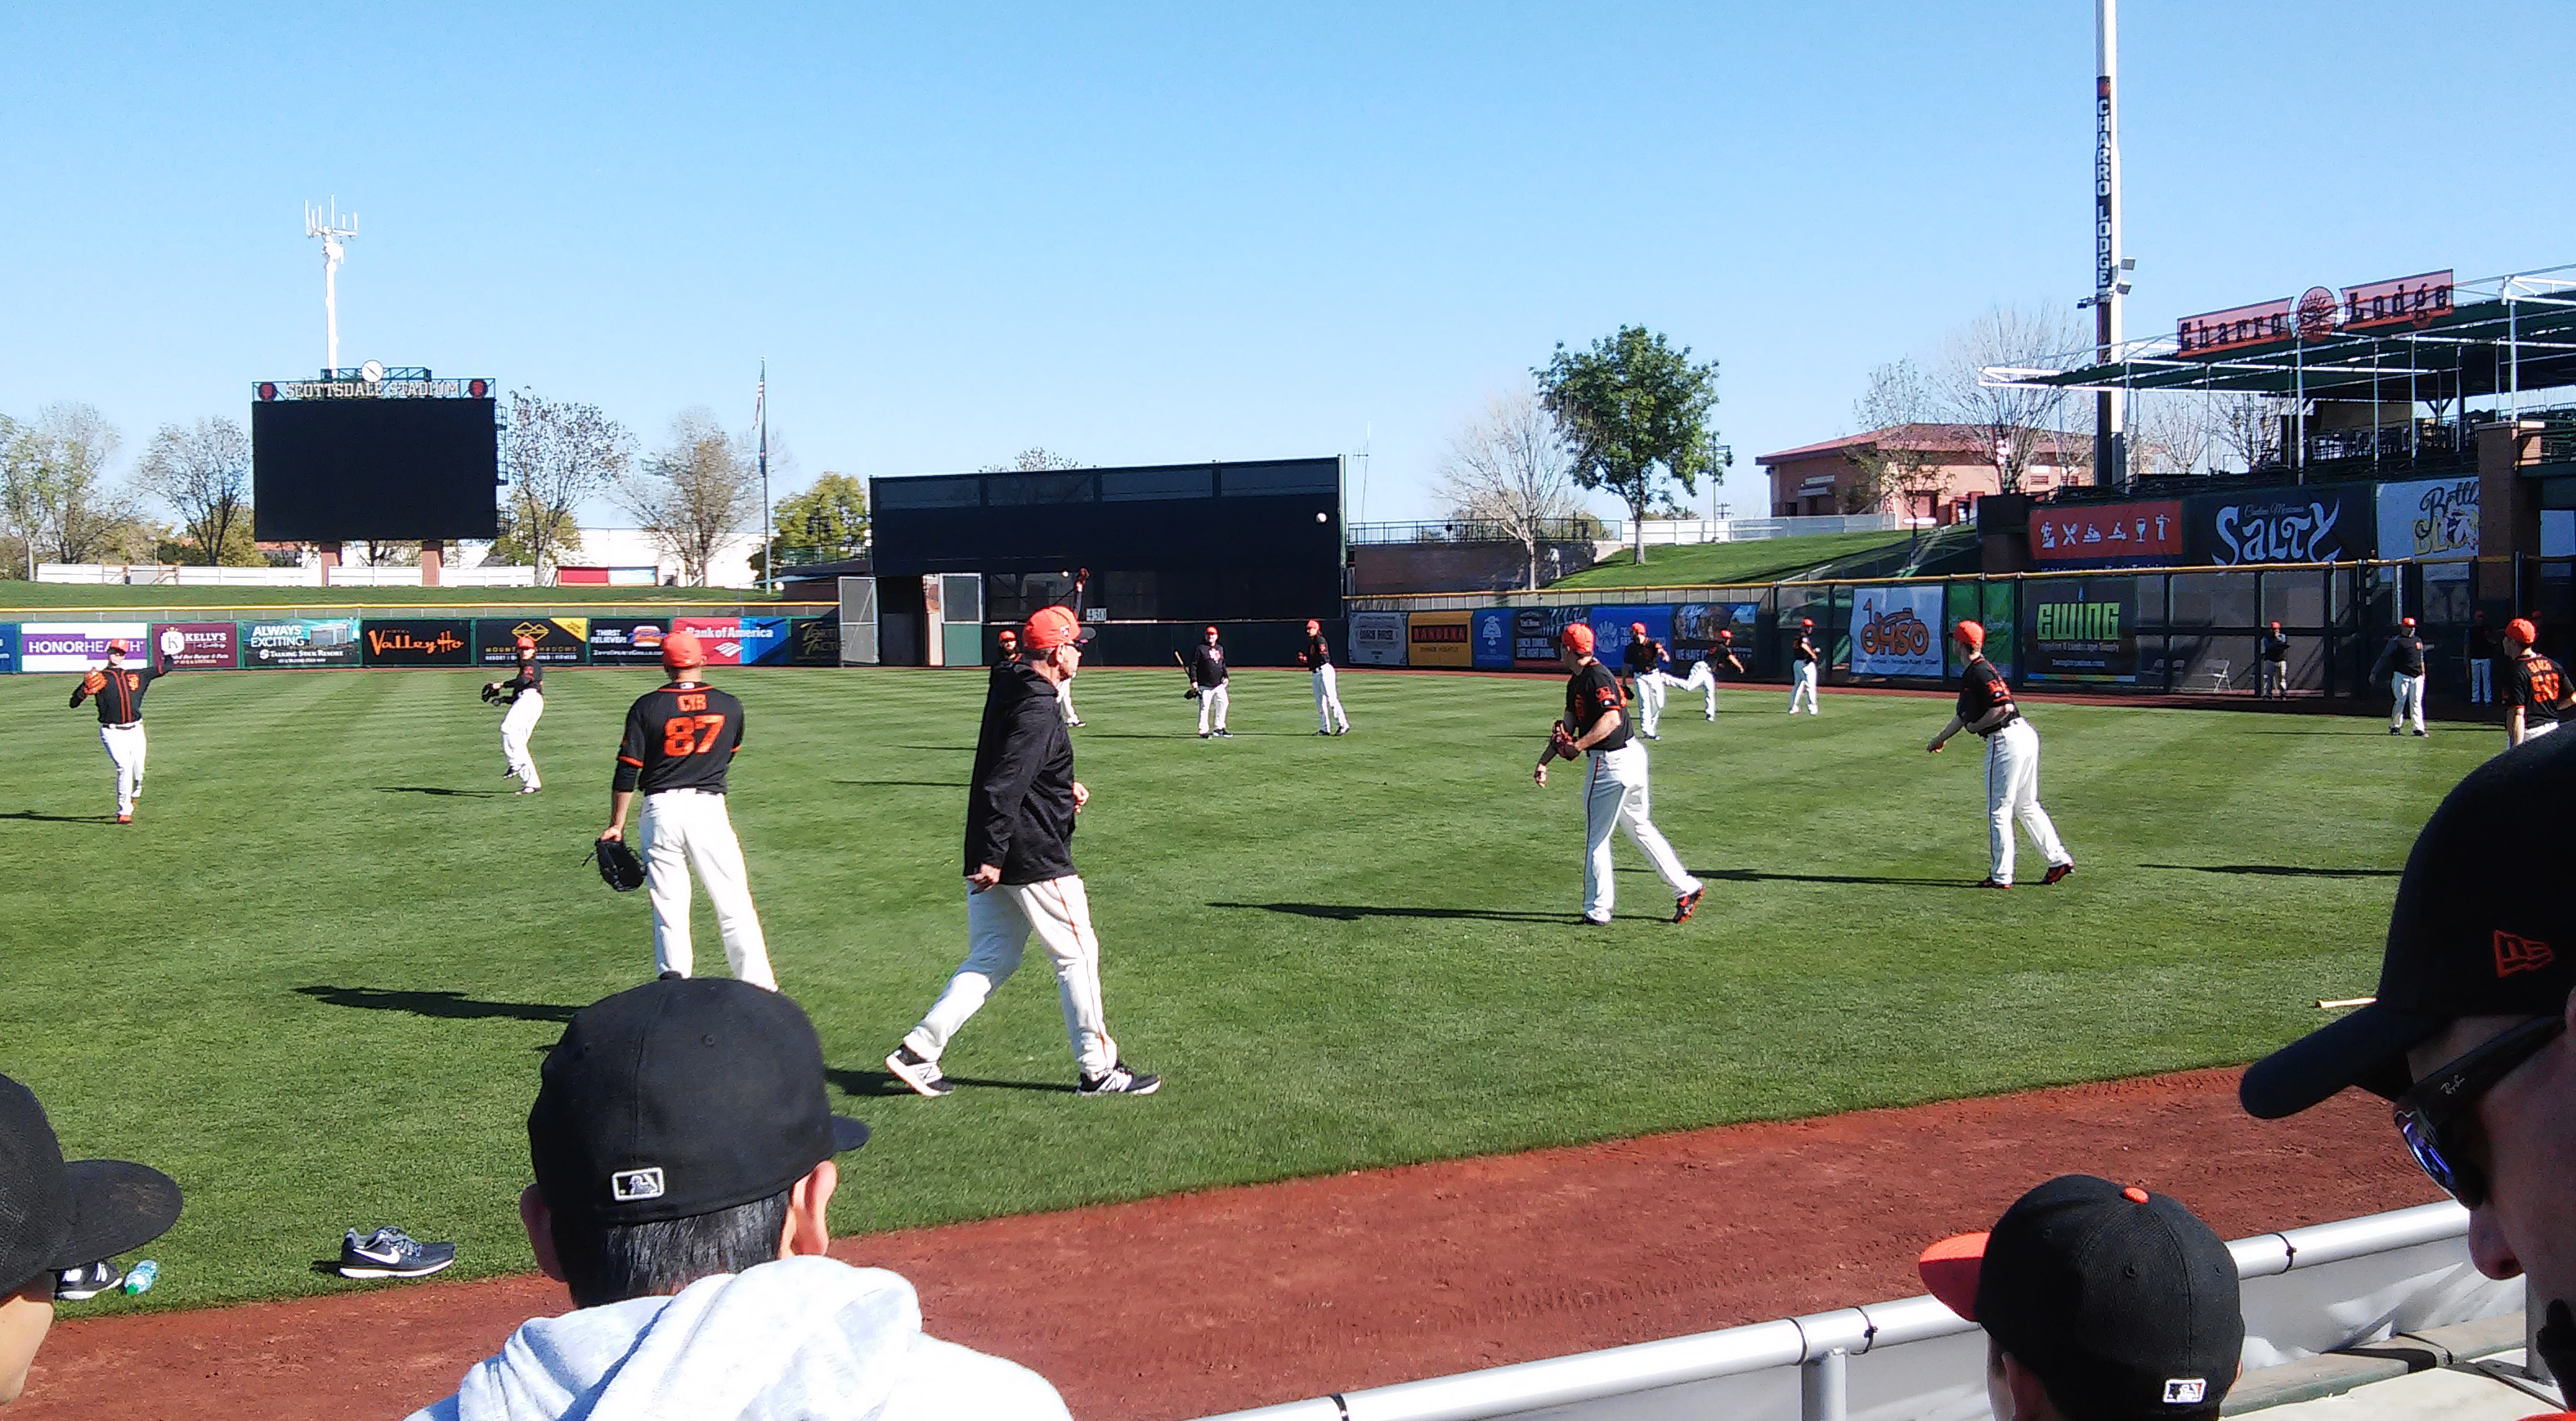 Bochy and Pitching (Edit)